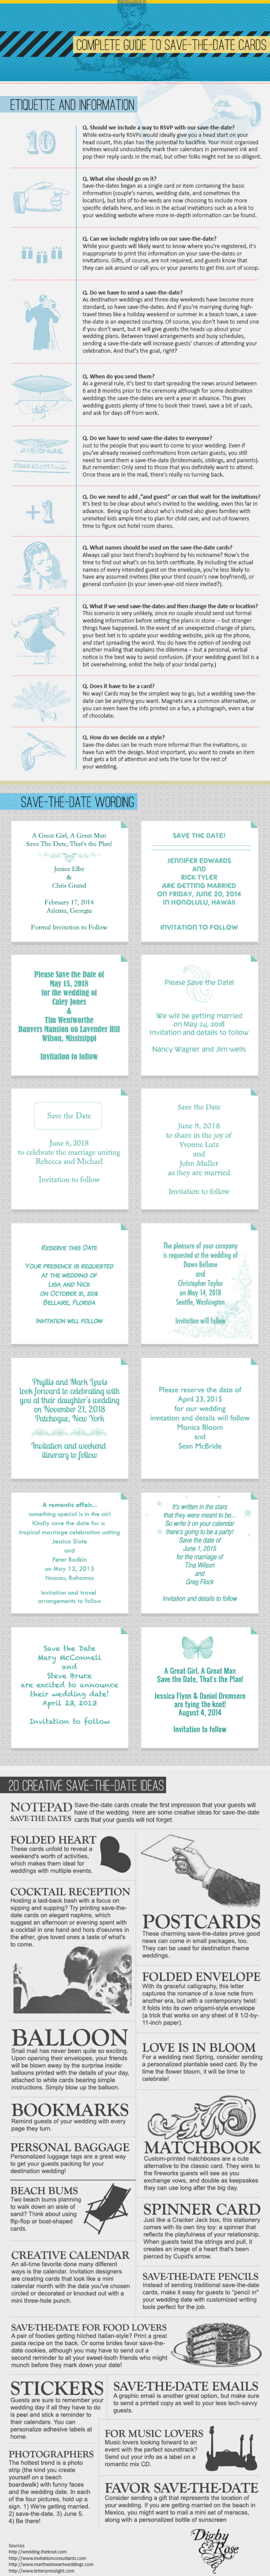 Complete Guide To Save-The-Date Cards Infographic